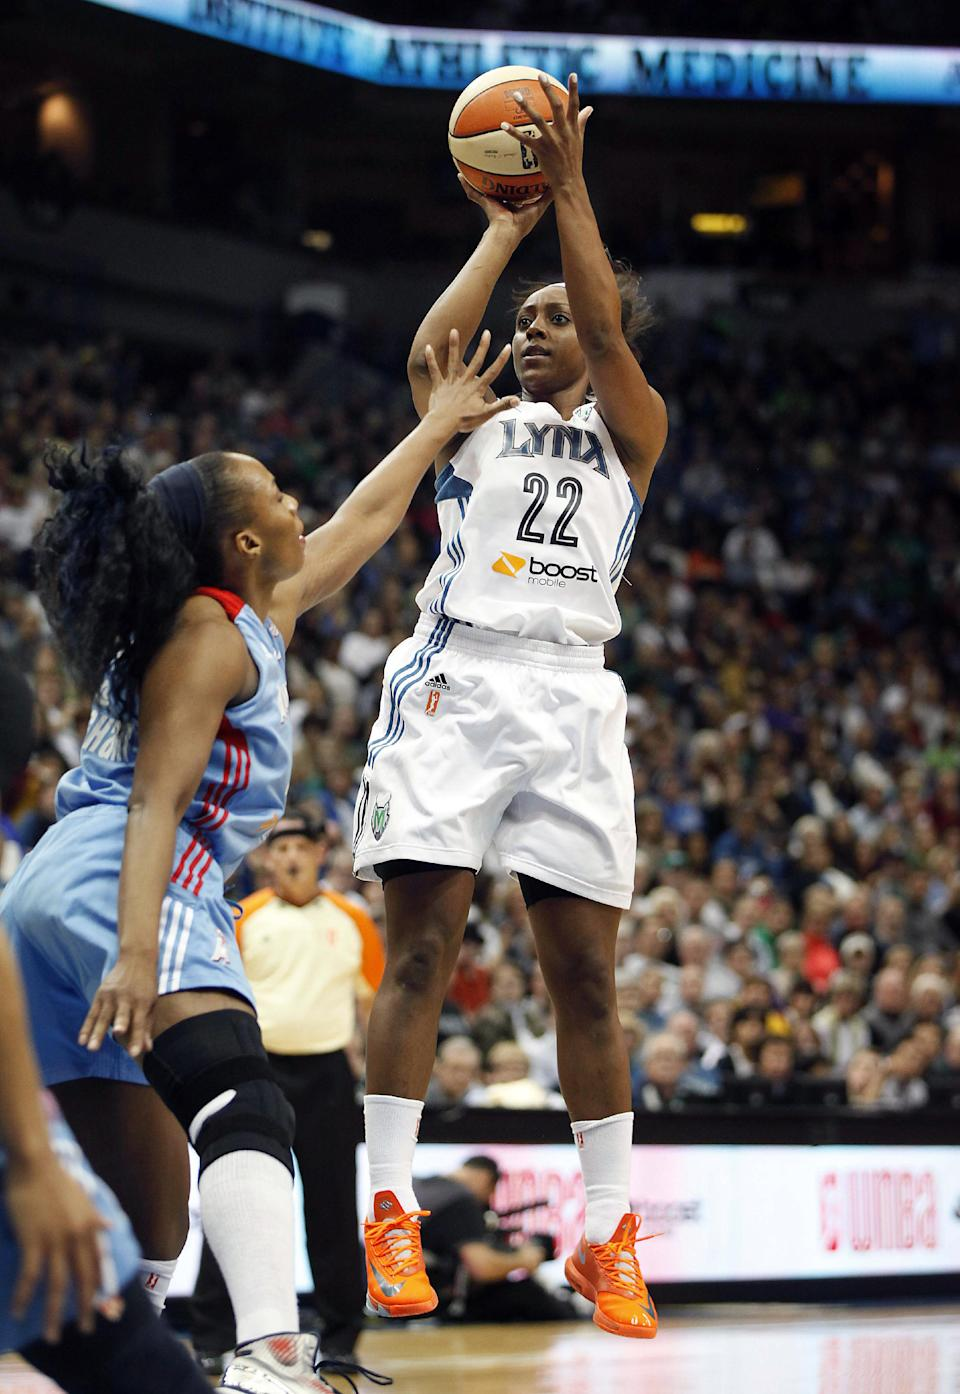 Moore leads Lynx past Dream 84-59 in Game 1